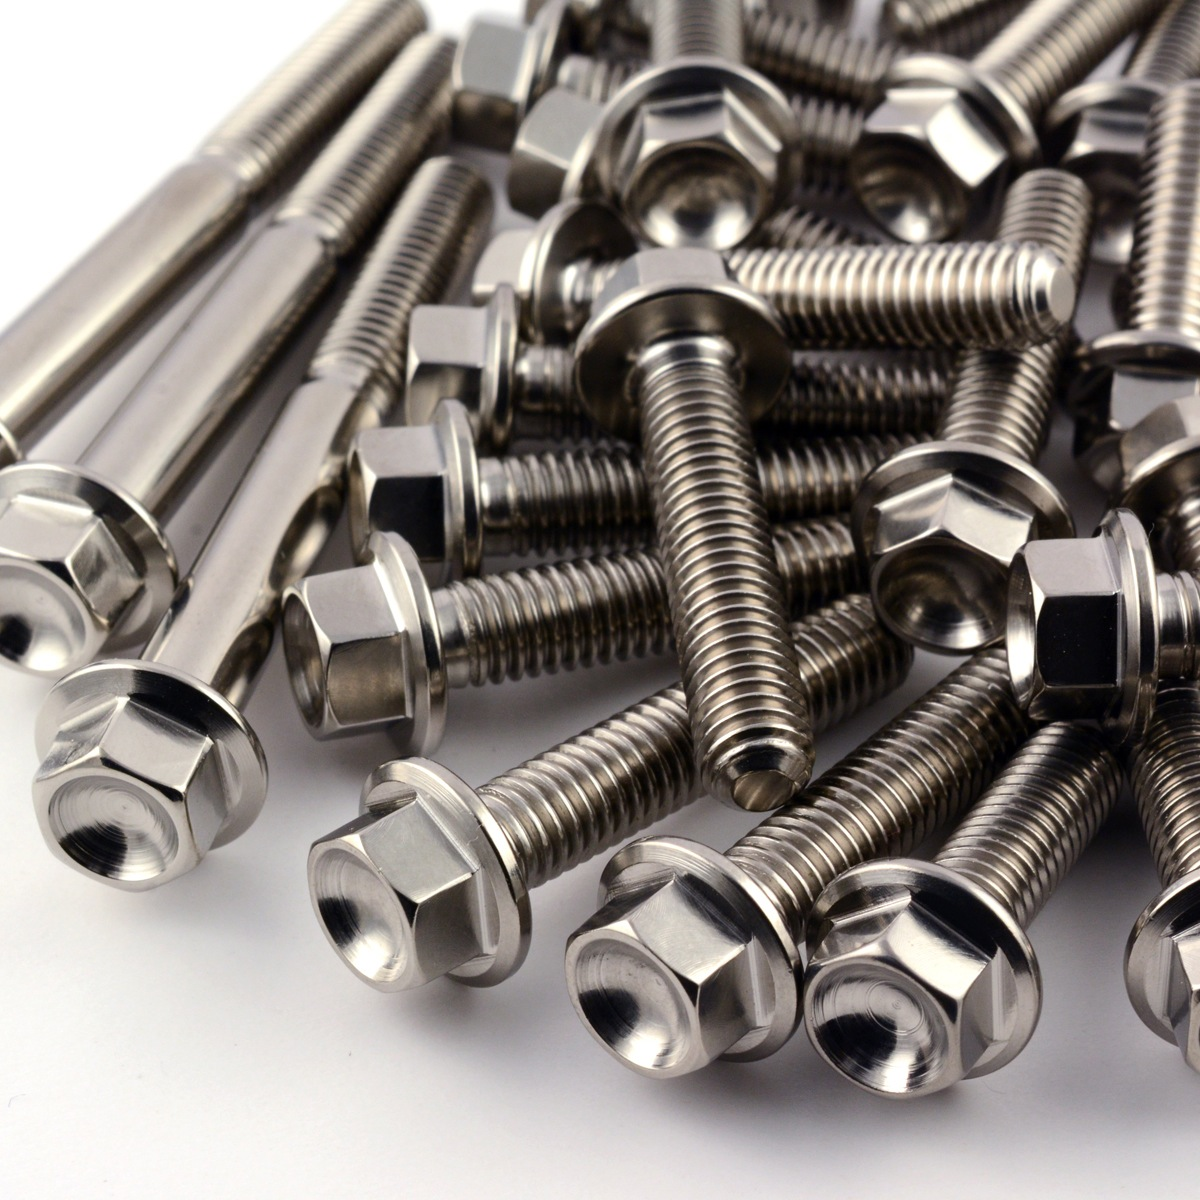 ASK THE MXPERTS: THE WHEN, WHERE, HOW & WHY OF TITANIUM BOLTS